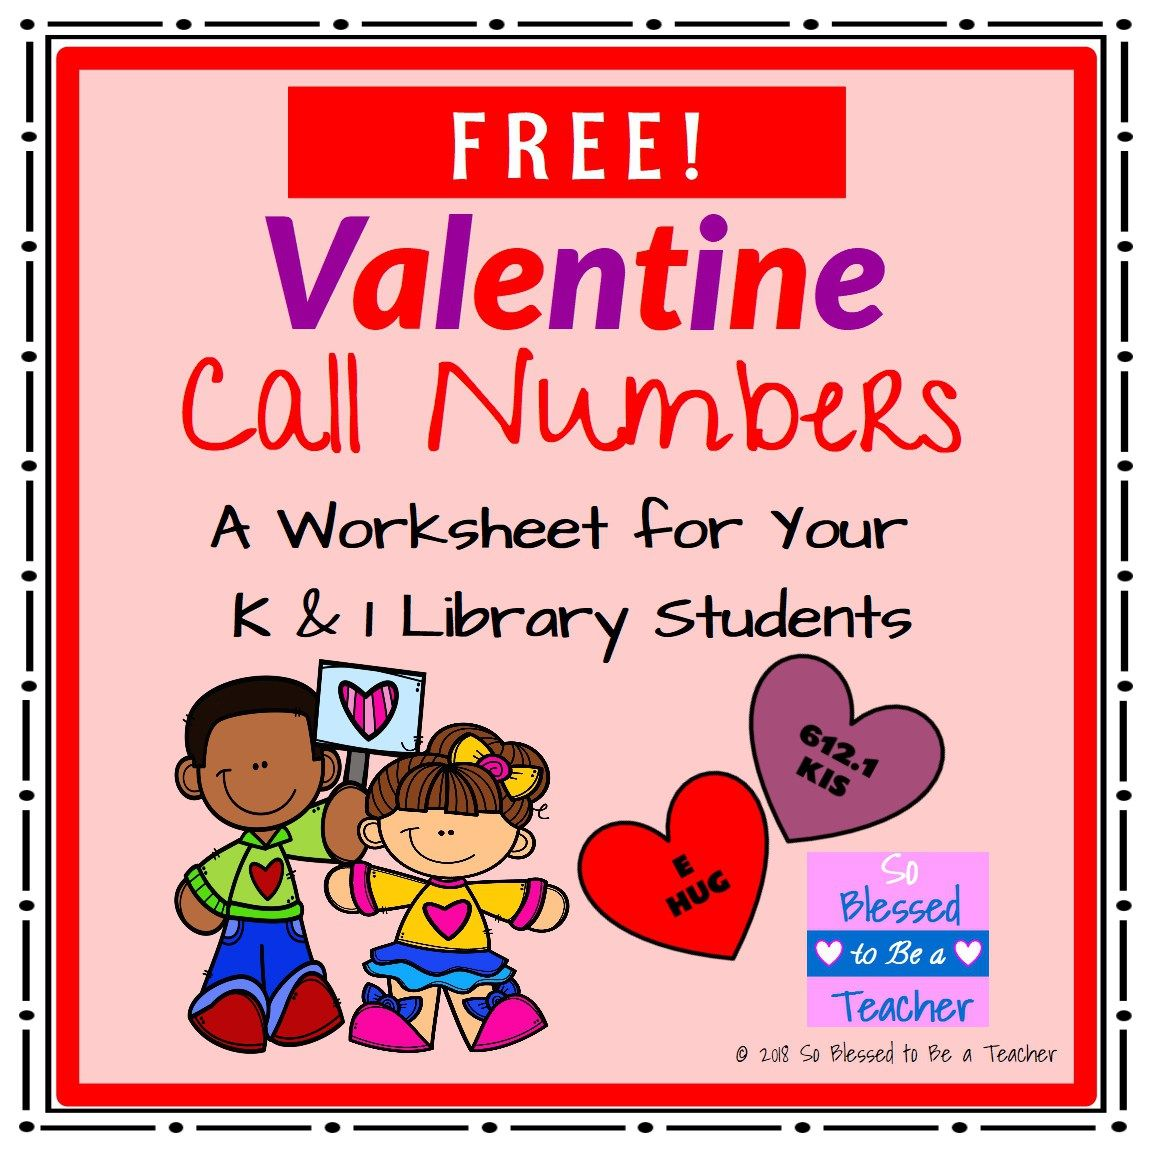 More Freebies For Your School Library On Teachers Pay